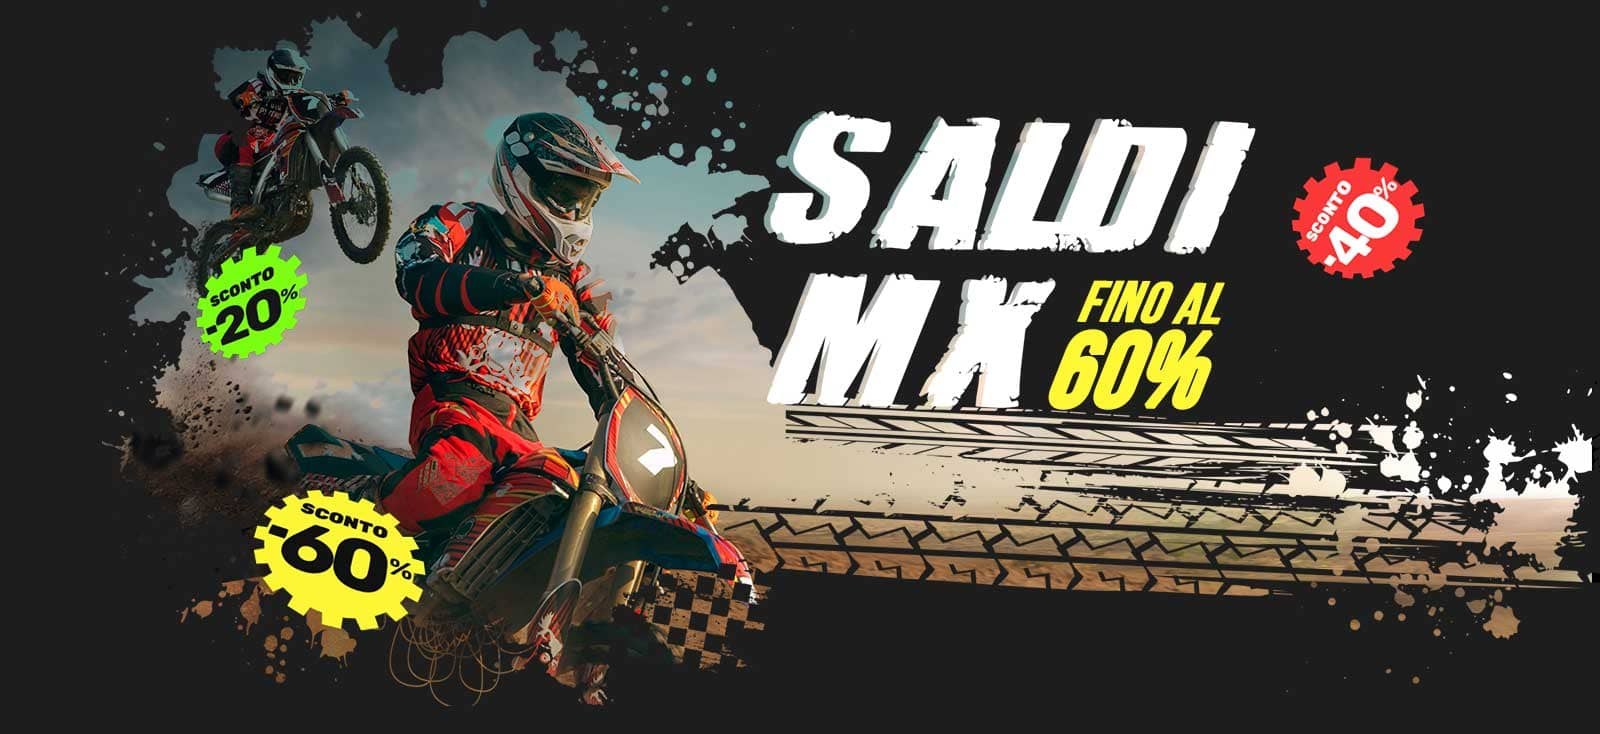 saldi-mx-offroad-cross